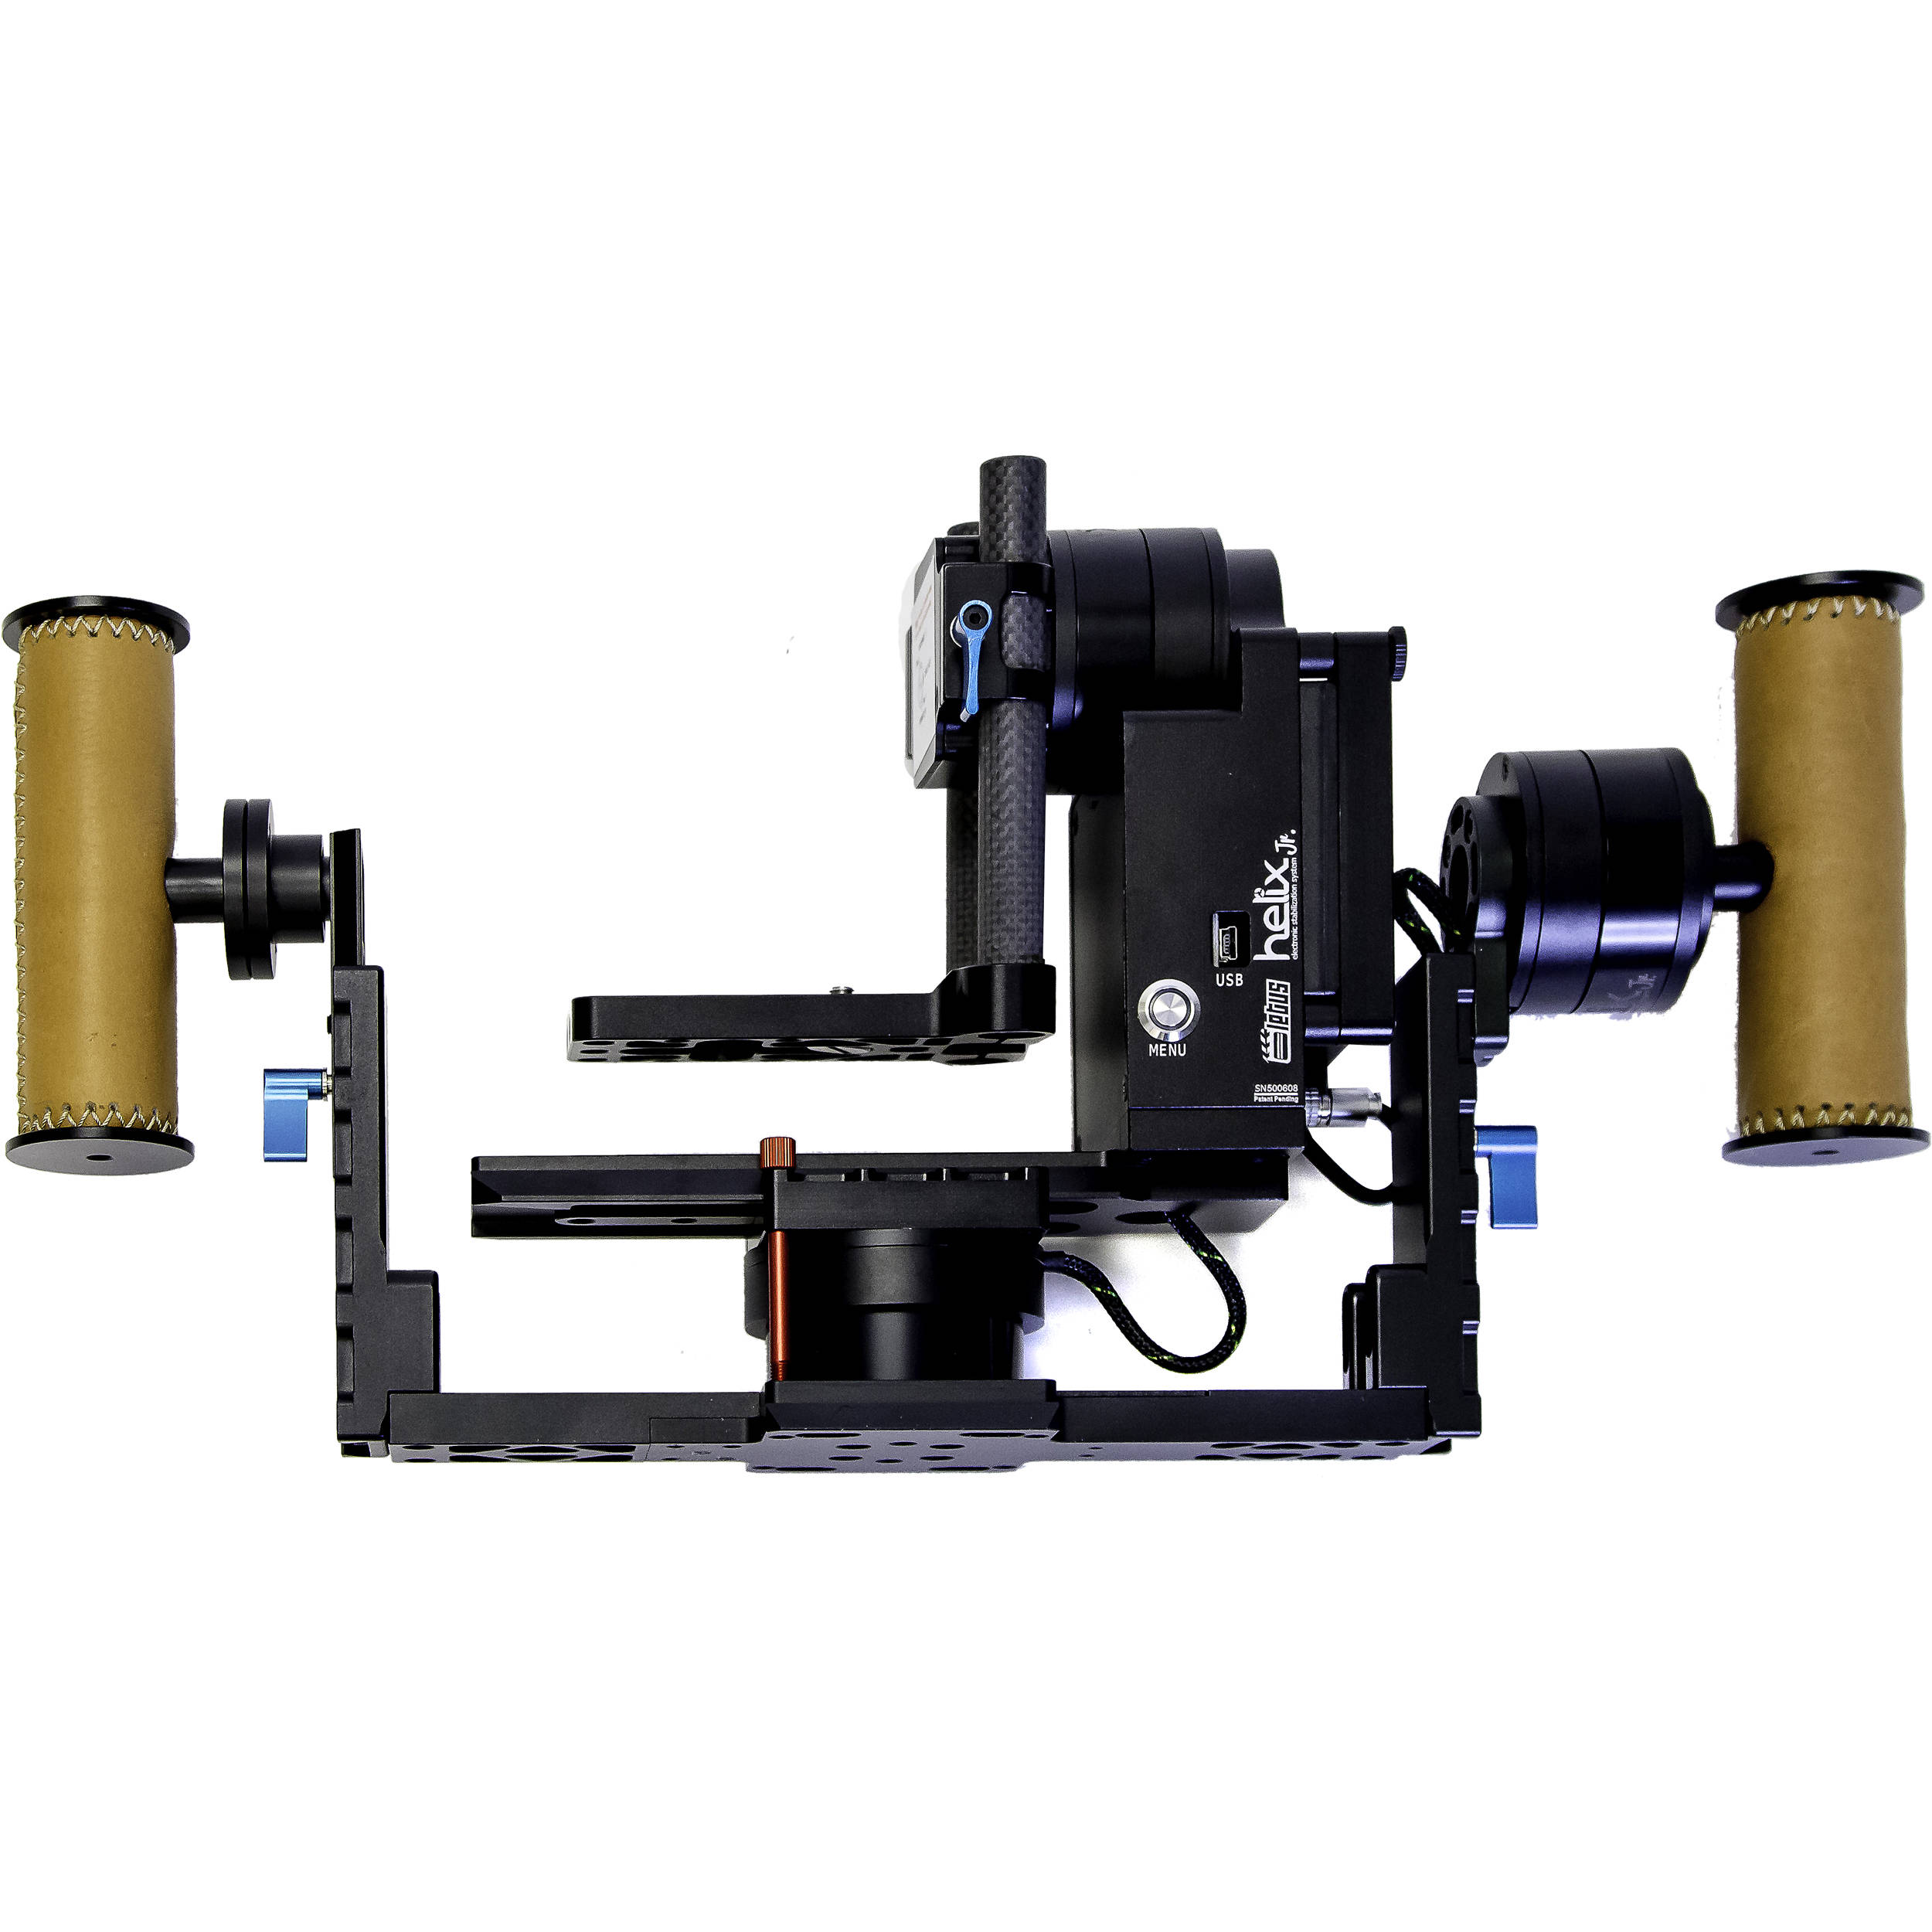 Letus35 Helix Jr  Handheld Gimbal Stabilizer with Bluetooth, Wi-Fi, and  Encoders (Aluminum)